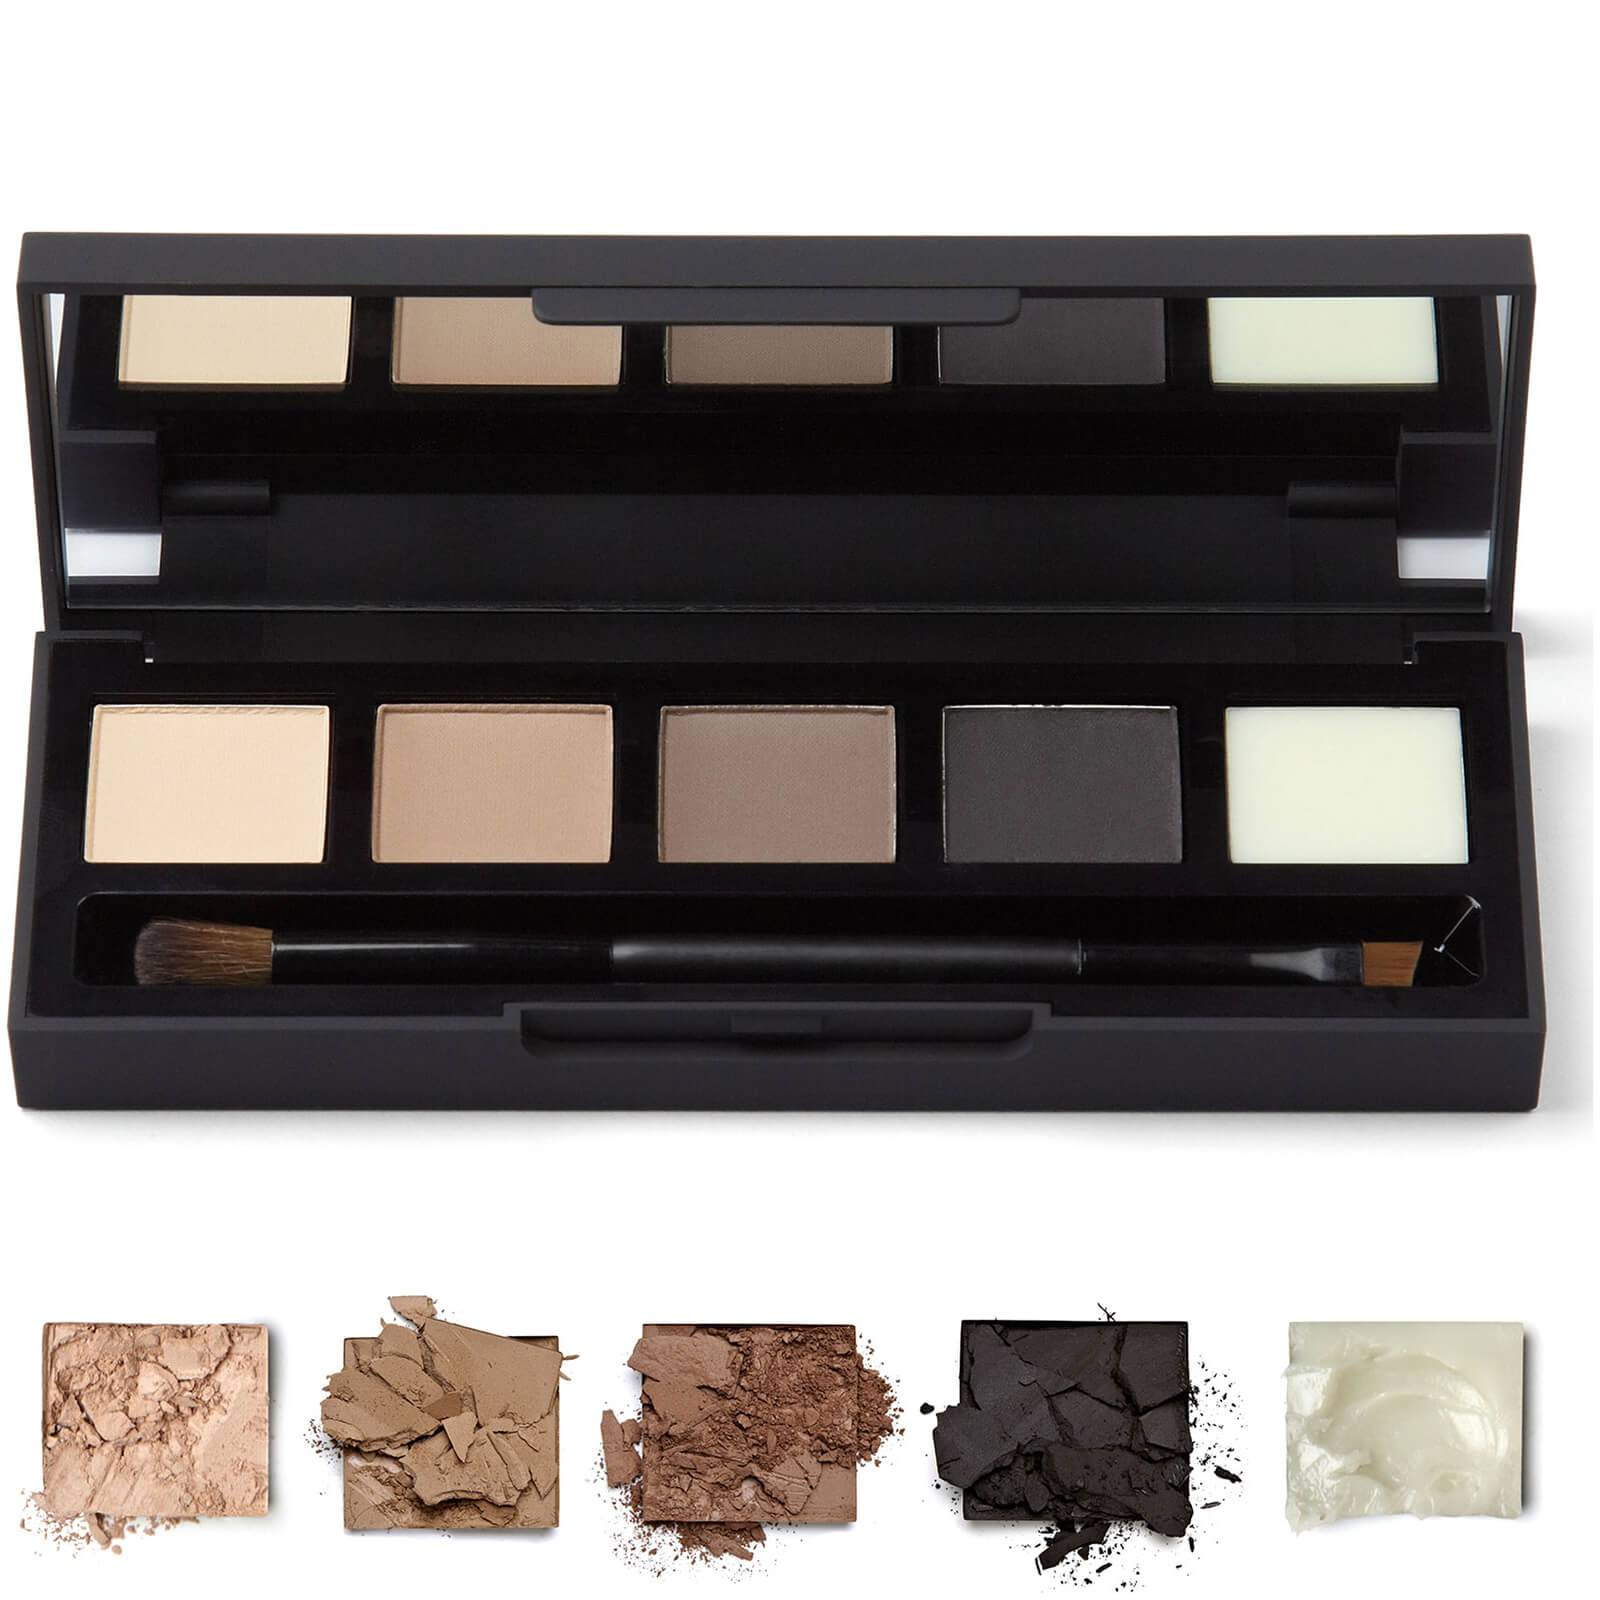 HD Brows Eye and Brow Palette - Foxy